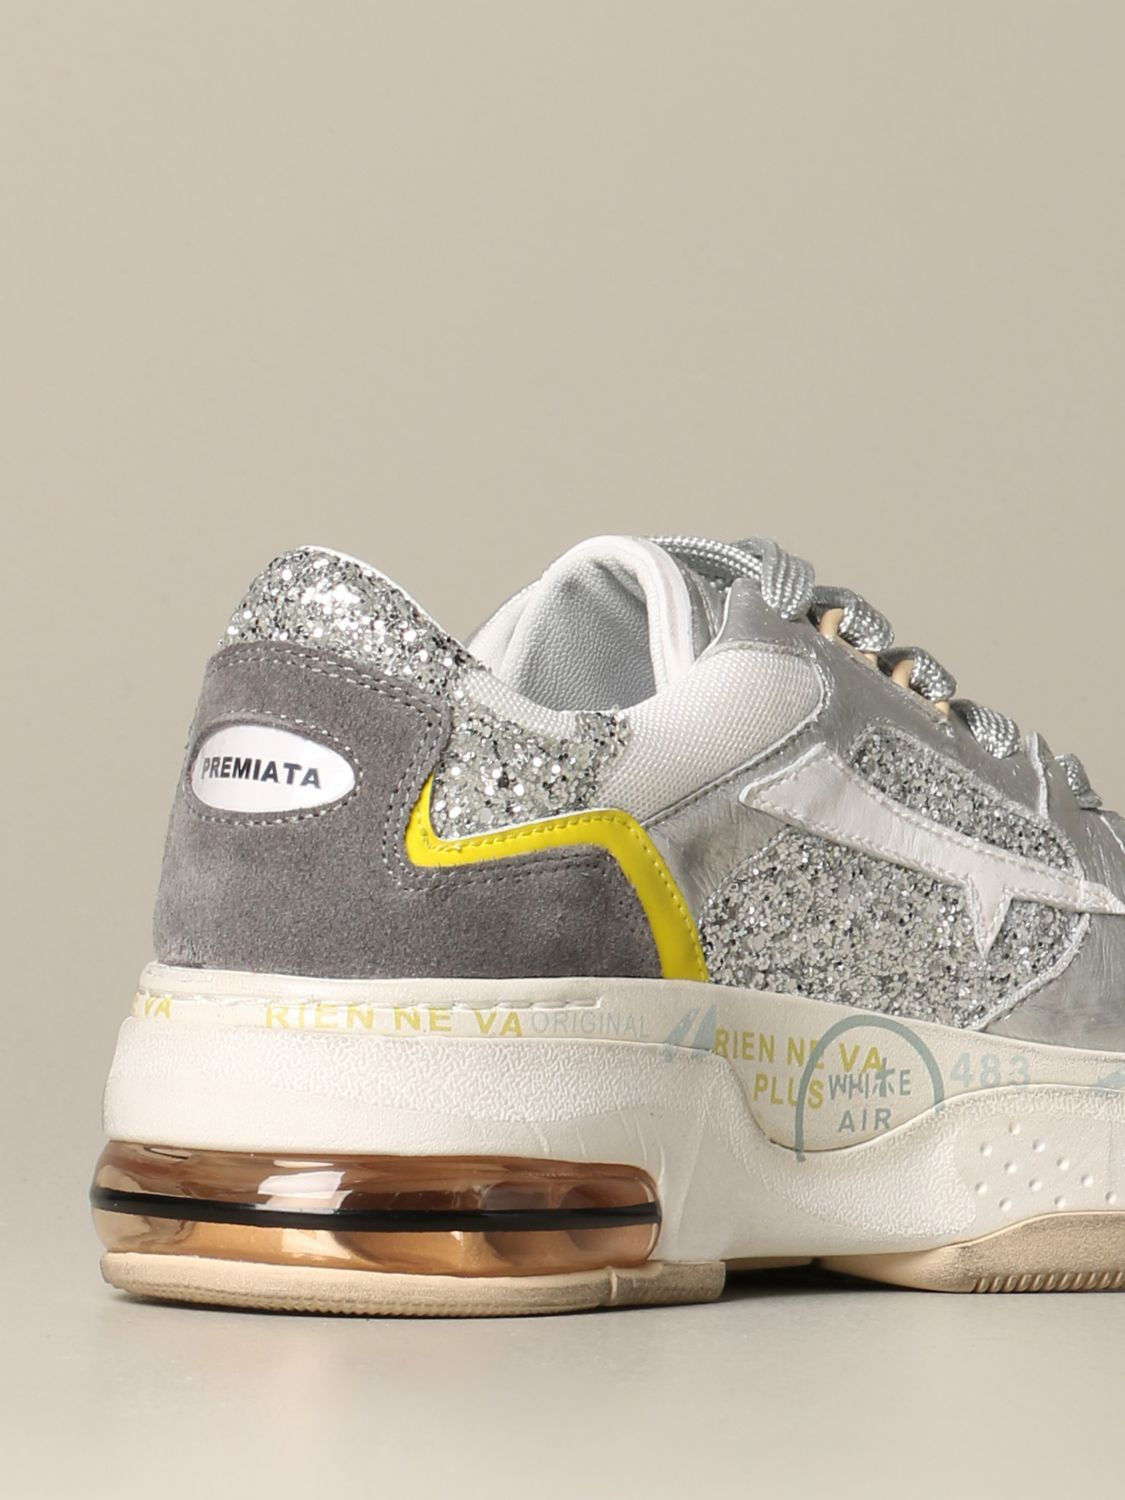 Premiata Drake sizey sneakers in leather and glitter silver 3